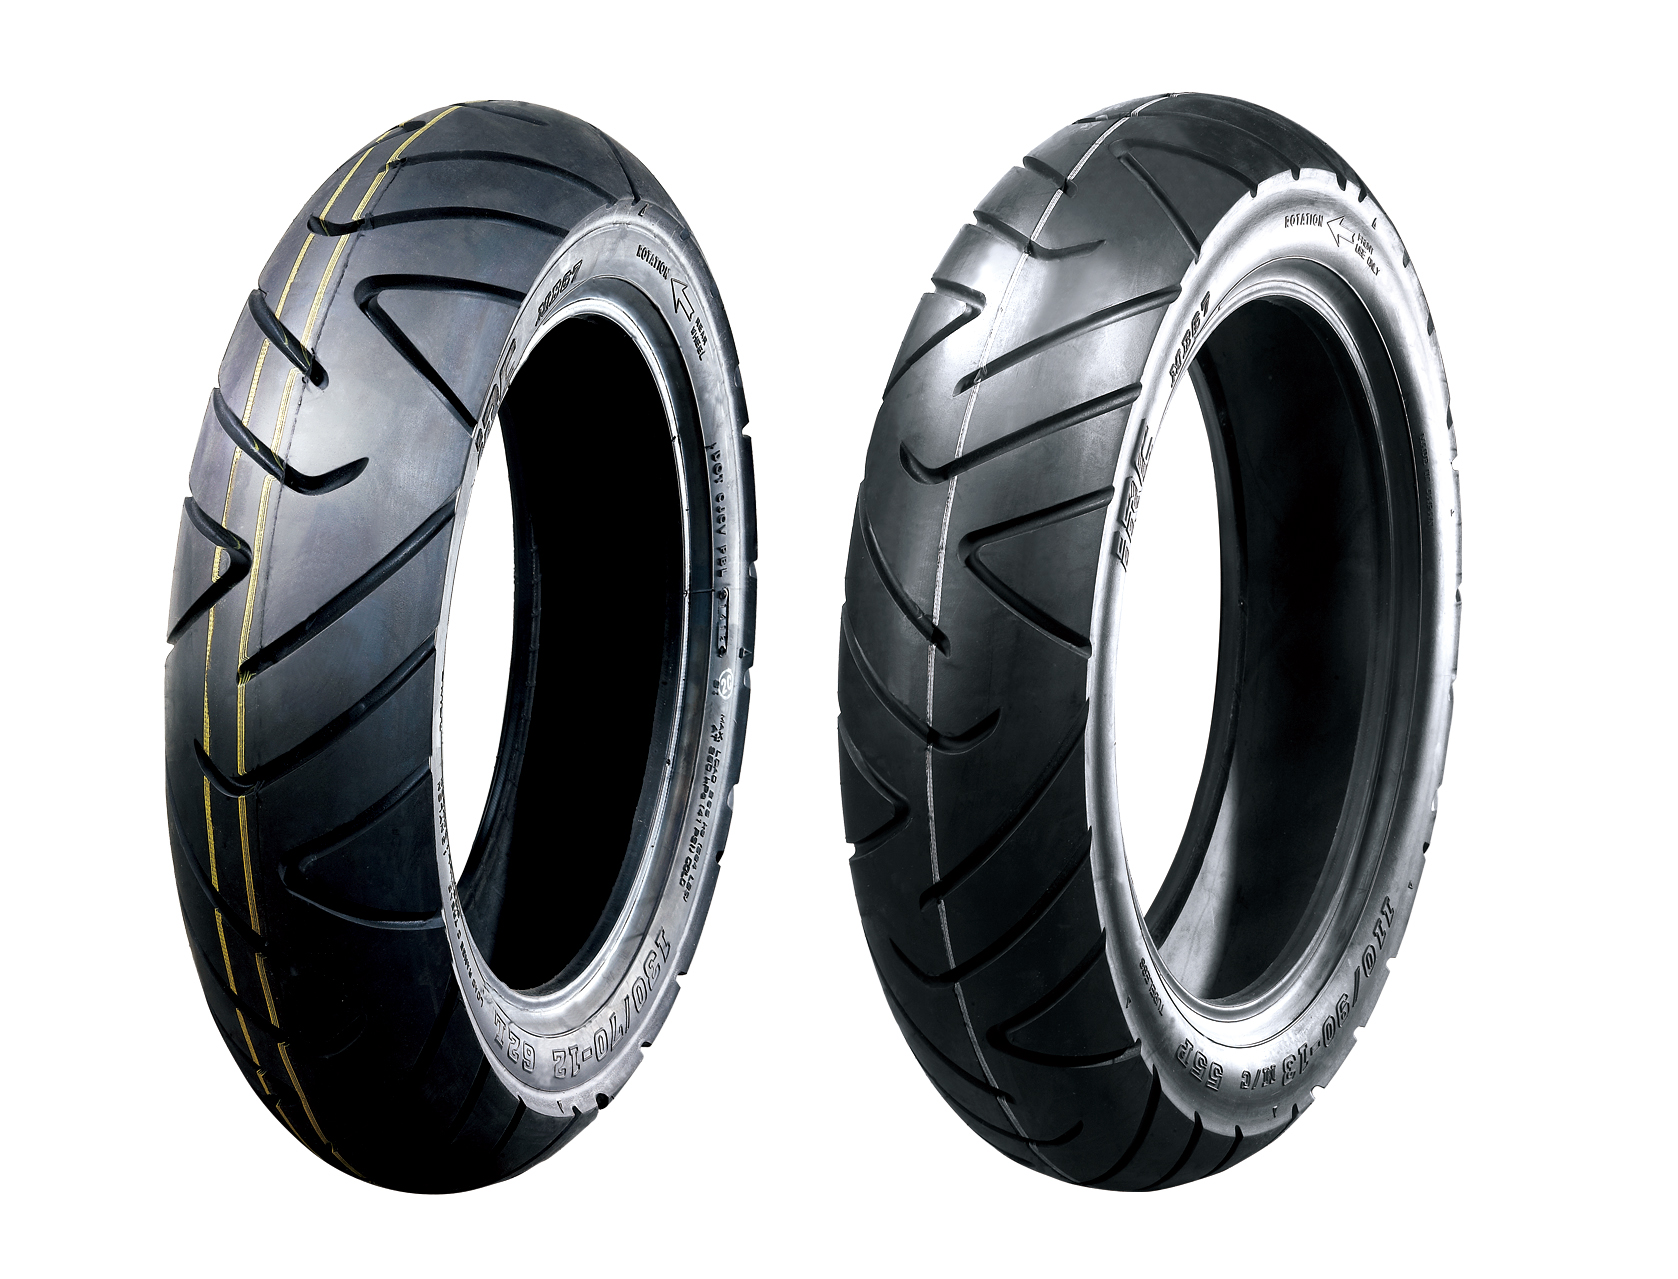 SUNF SCOOTER TIRES MOTOCYCLE TIRES MANUFACTURER CHINA